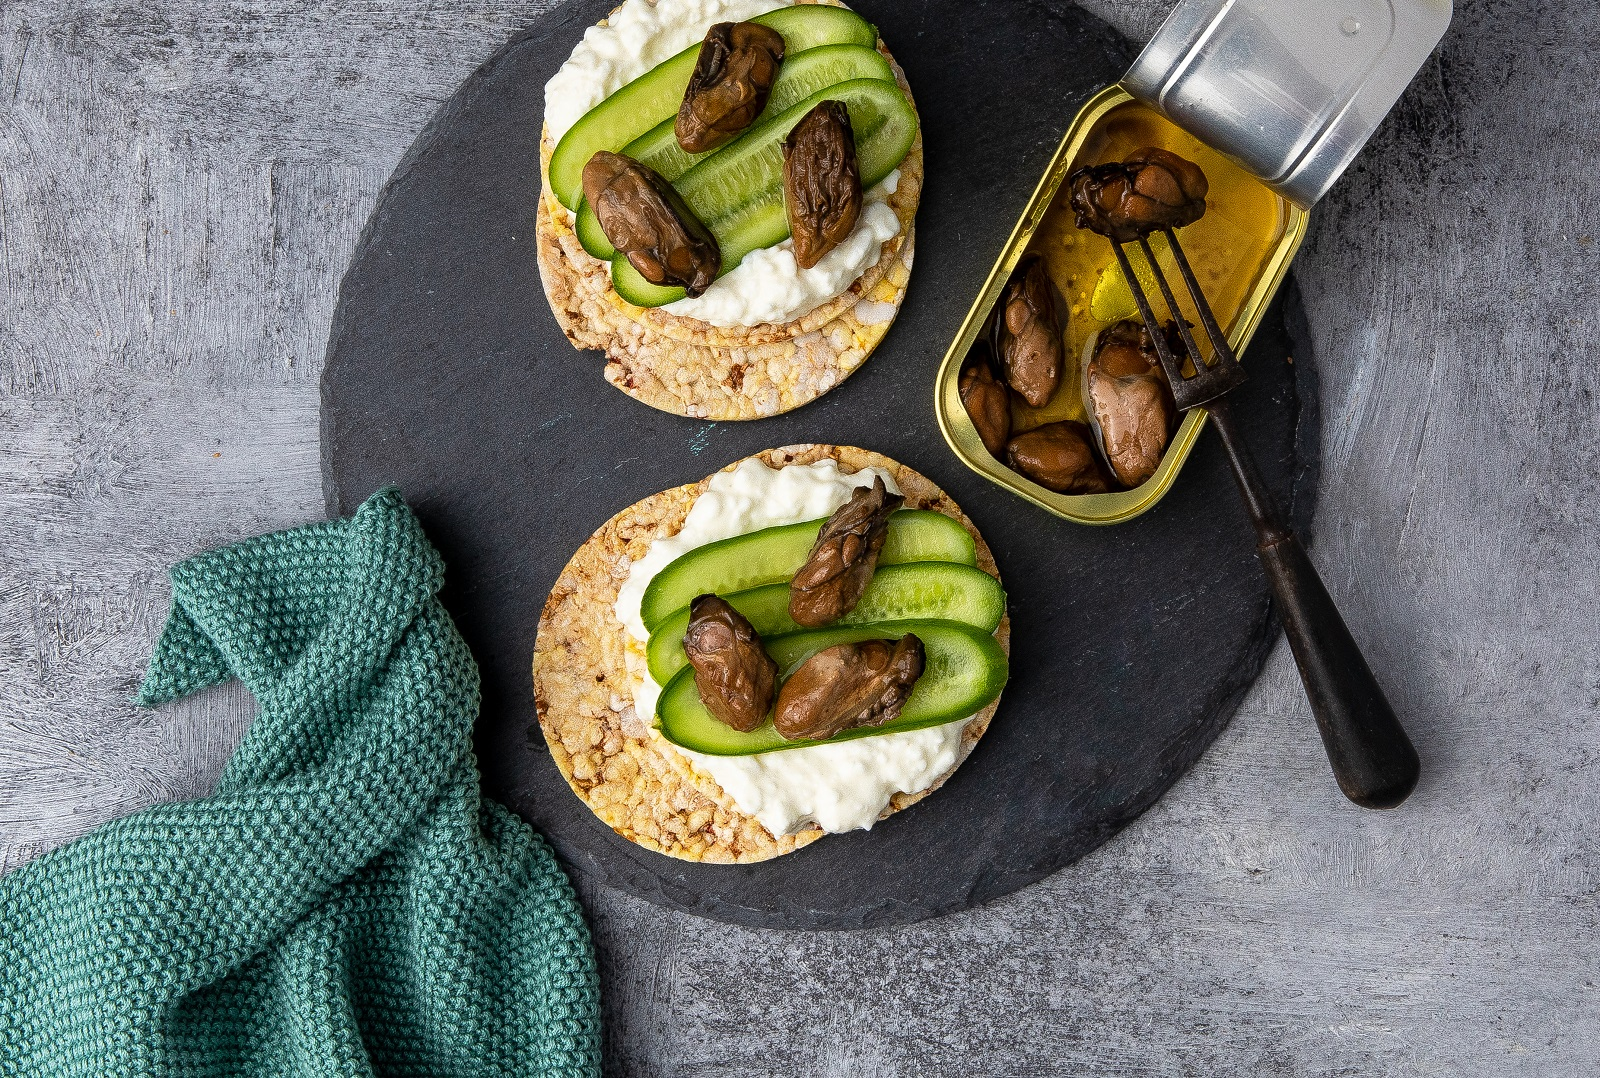 Cream Cheese, Cucumber & Smoked Oysters on CORN THINS slices